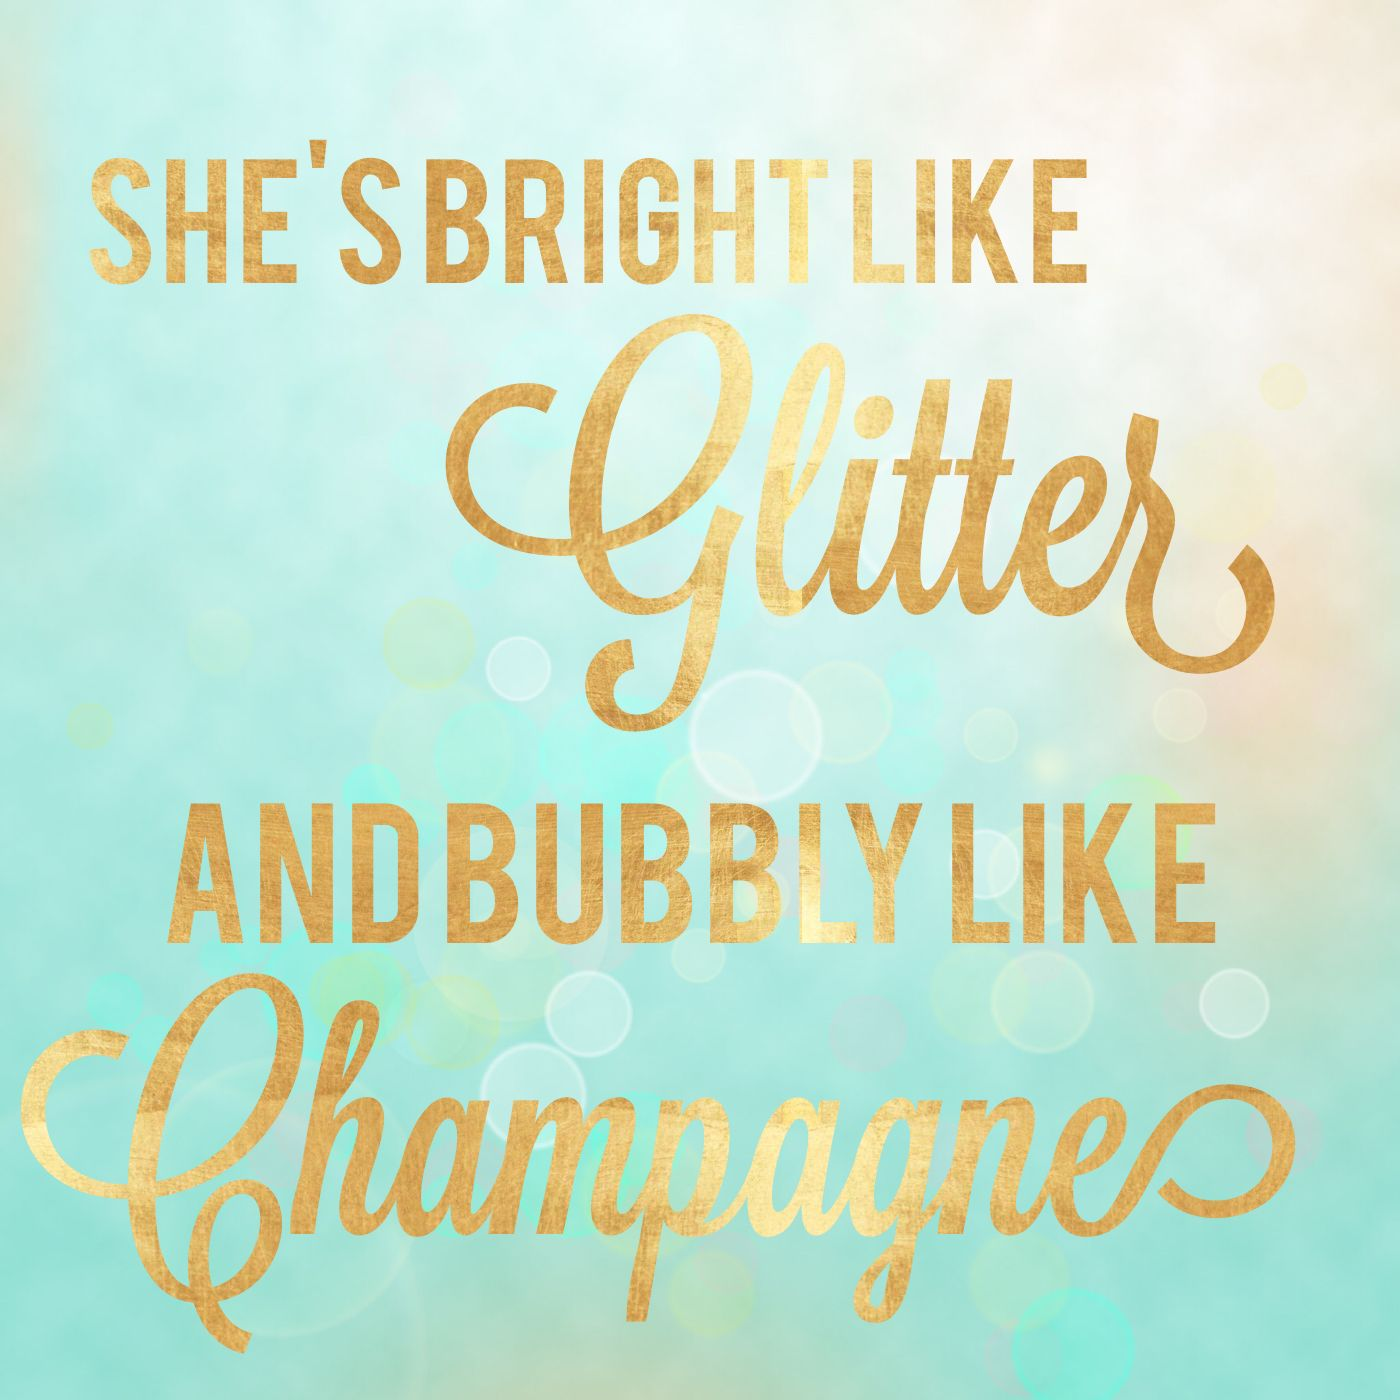 Sparkle quote : She's bright like glitter and bubbly like champagne